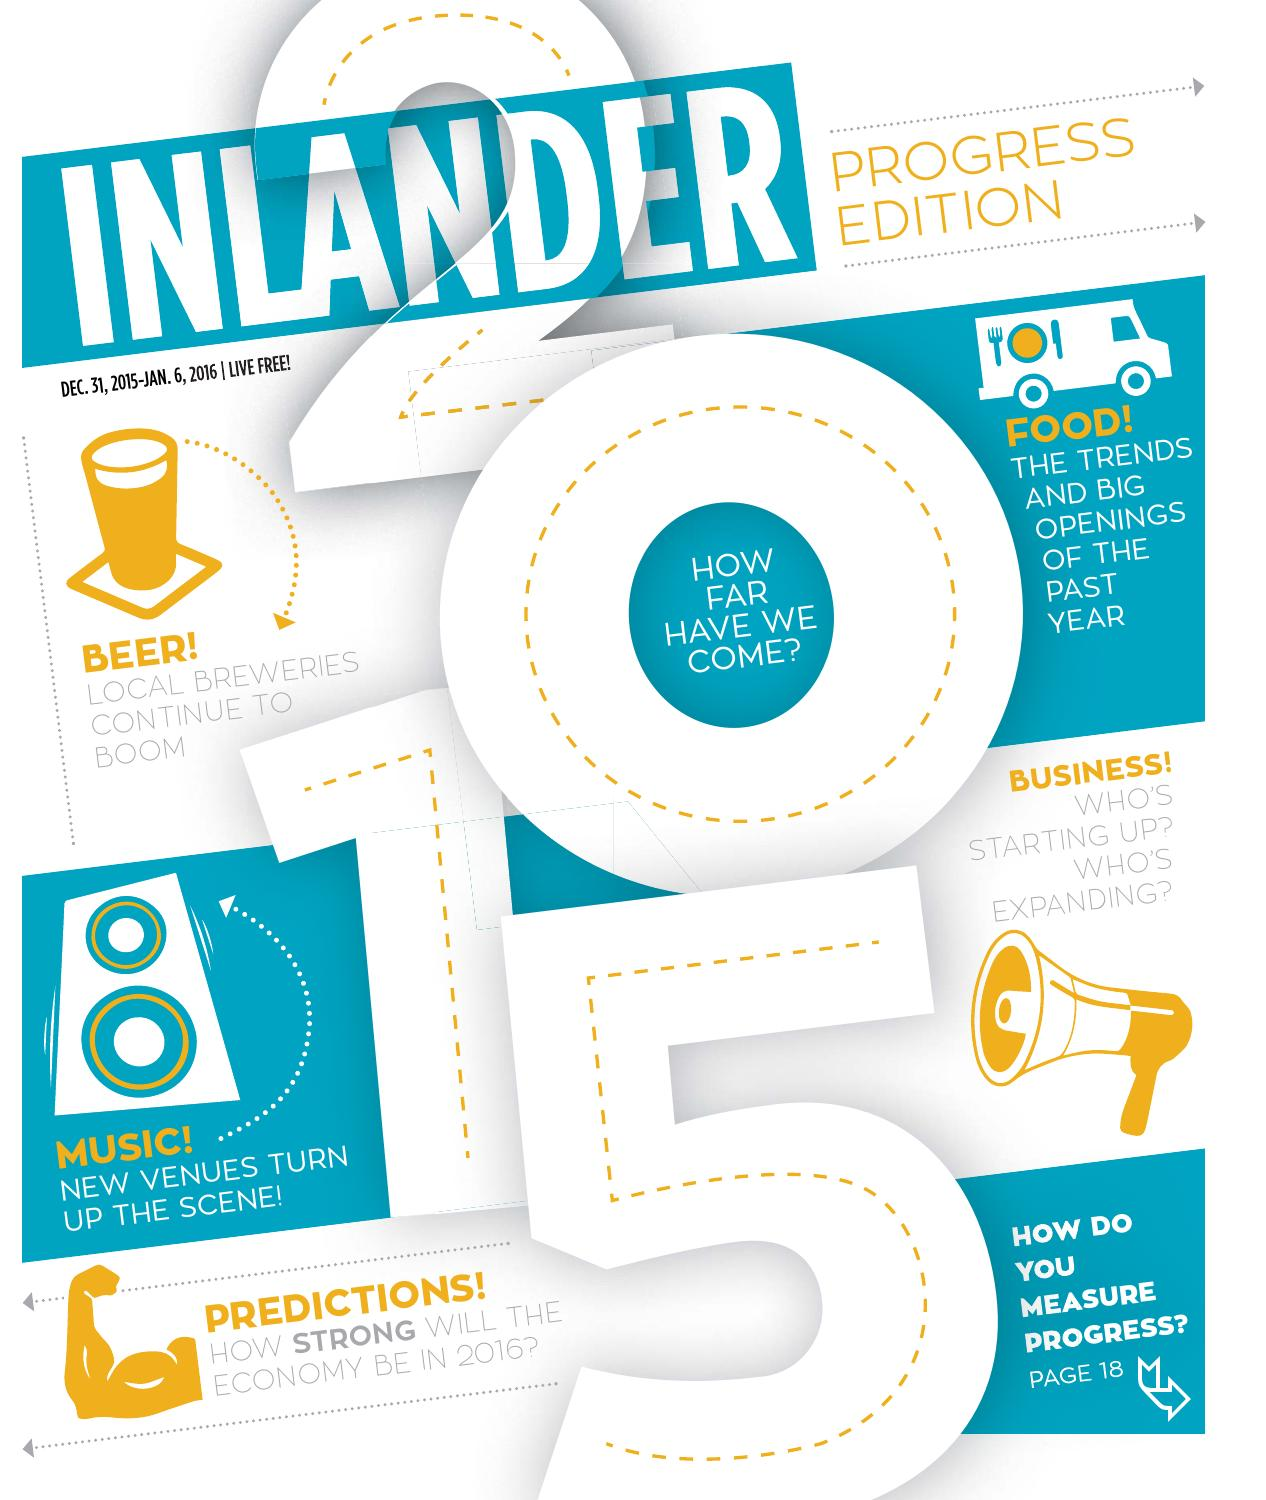 Inlander 12 31 2015 By The Issuu Google Play Gift Card Rp 500000